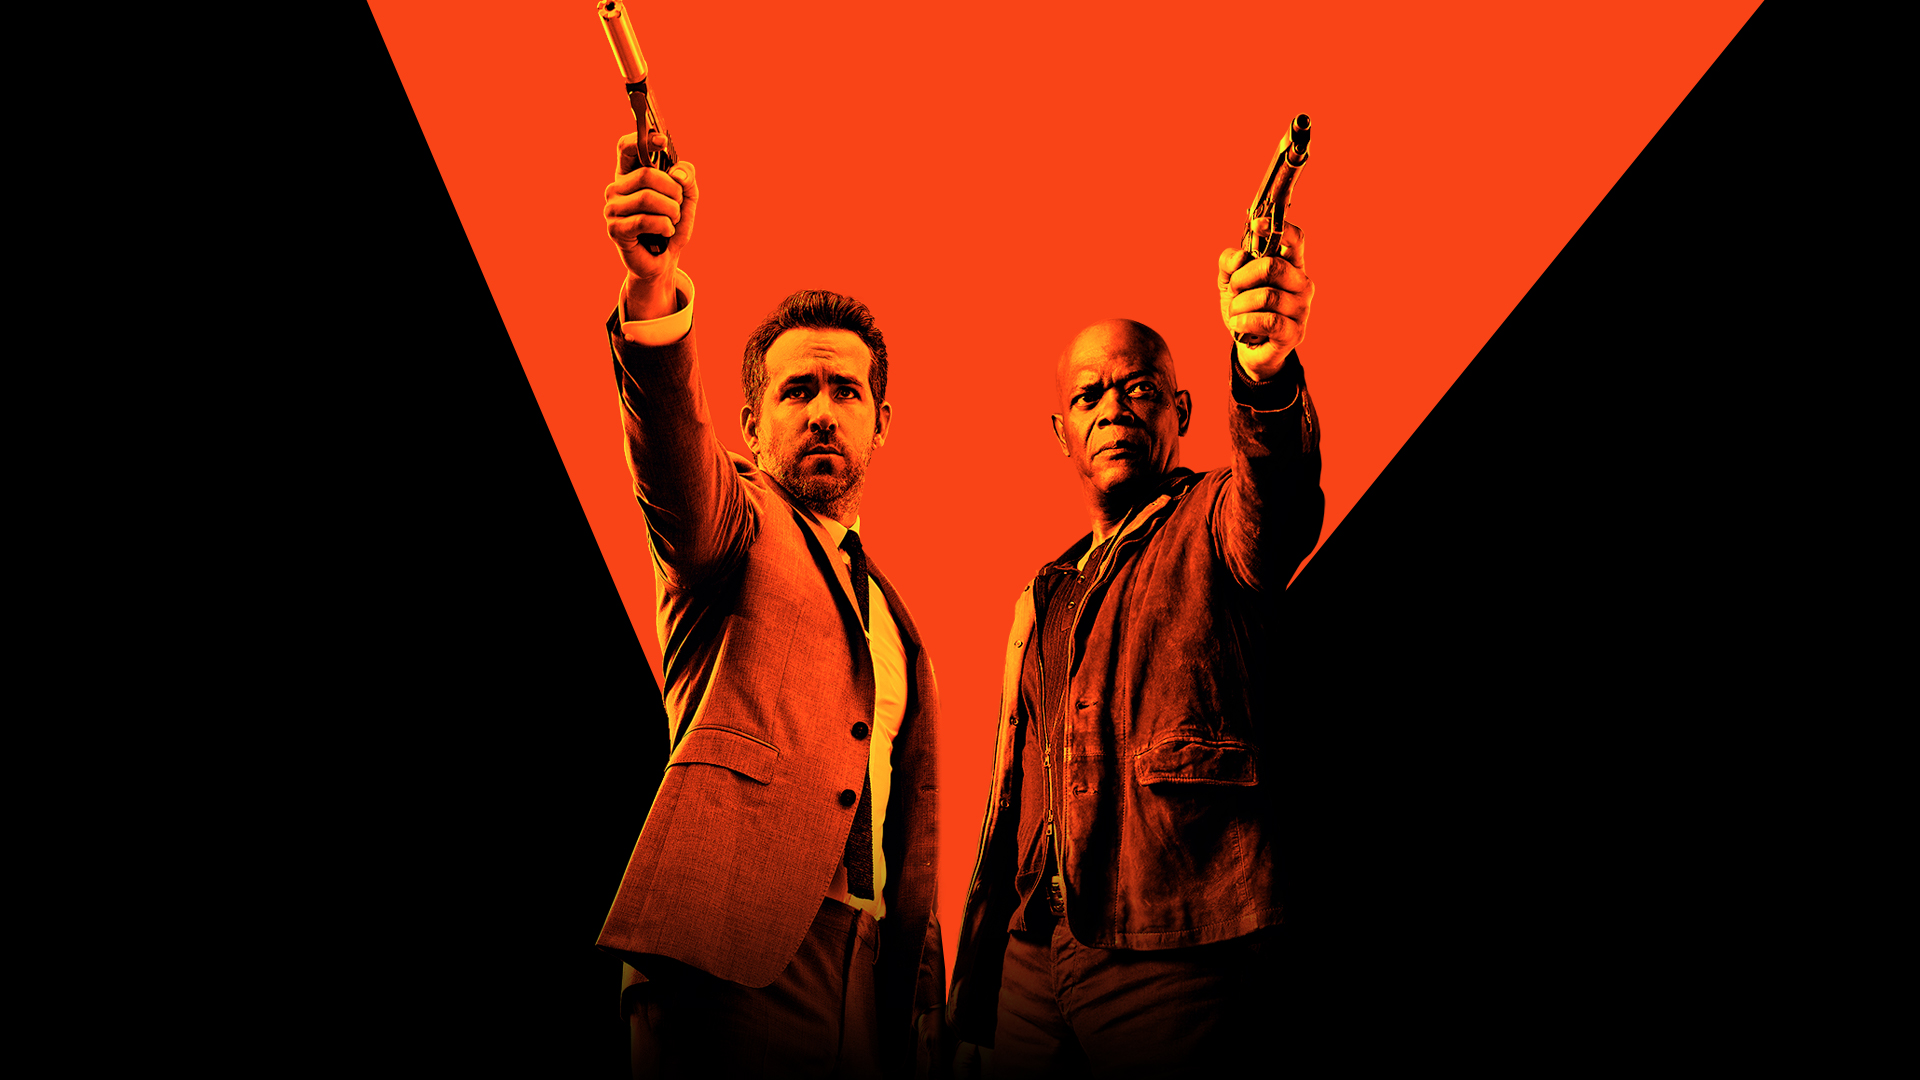 Hitman's Bodyguard-Care pe care – DVD